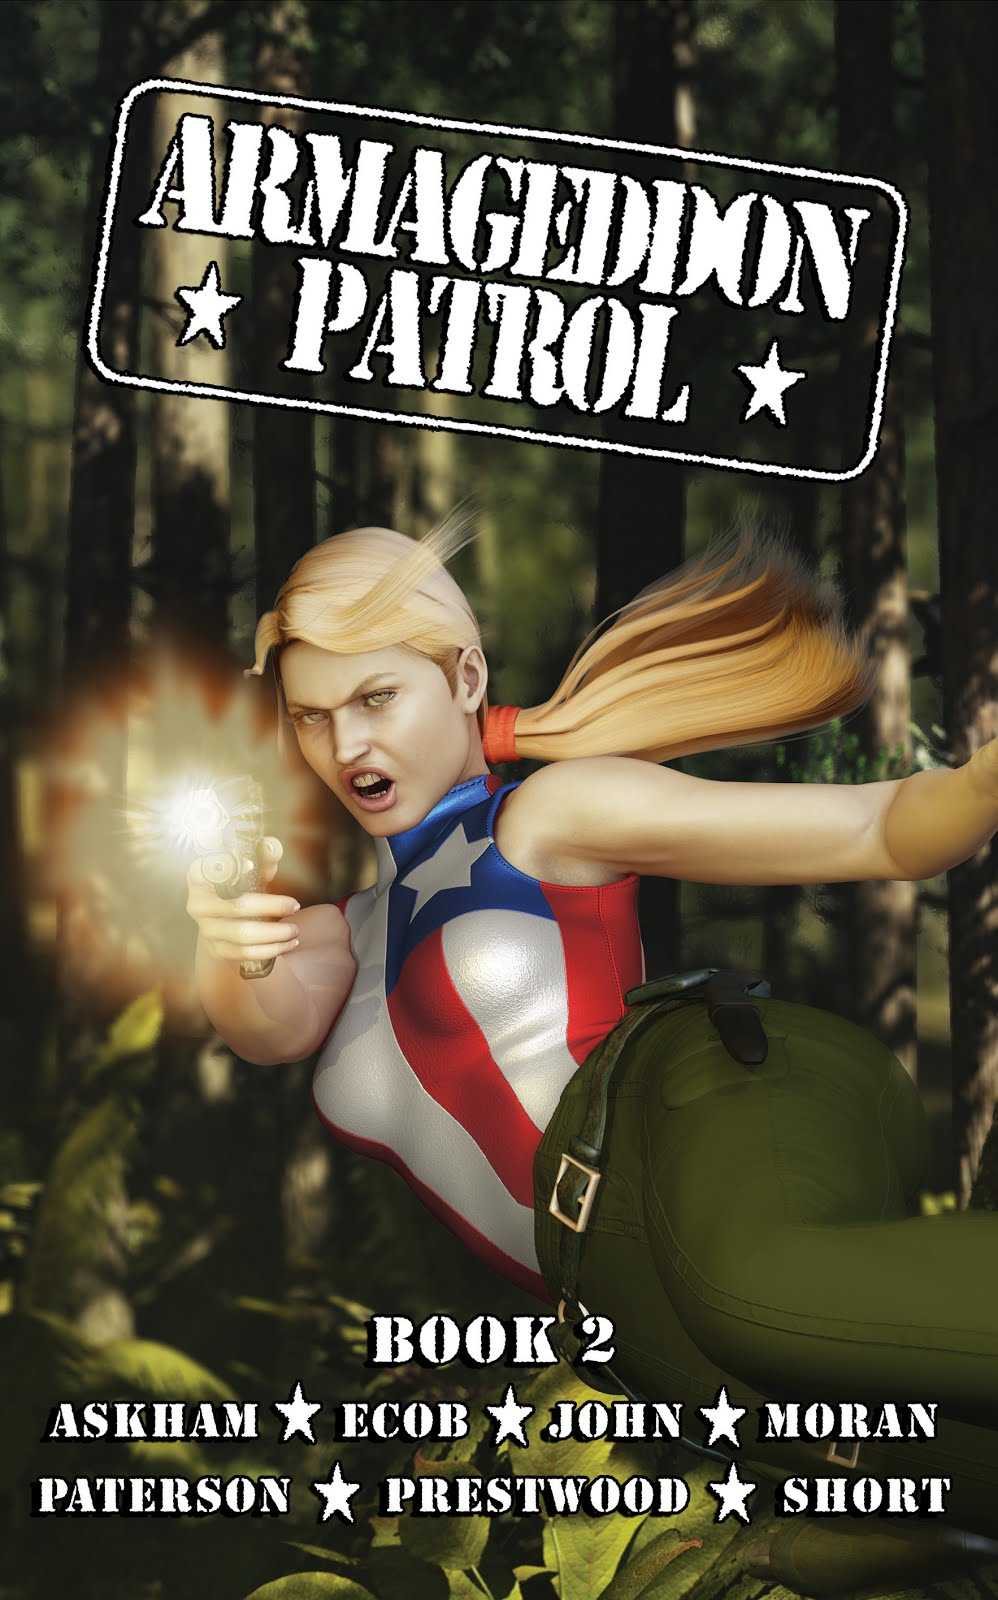 Buy ARMAGEDDON PATROL BOOK 2 below!